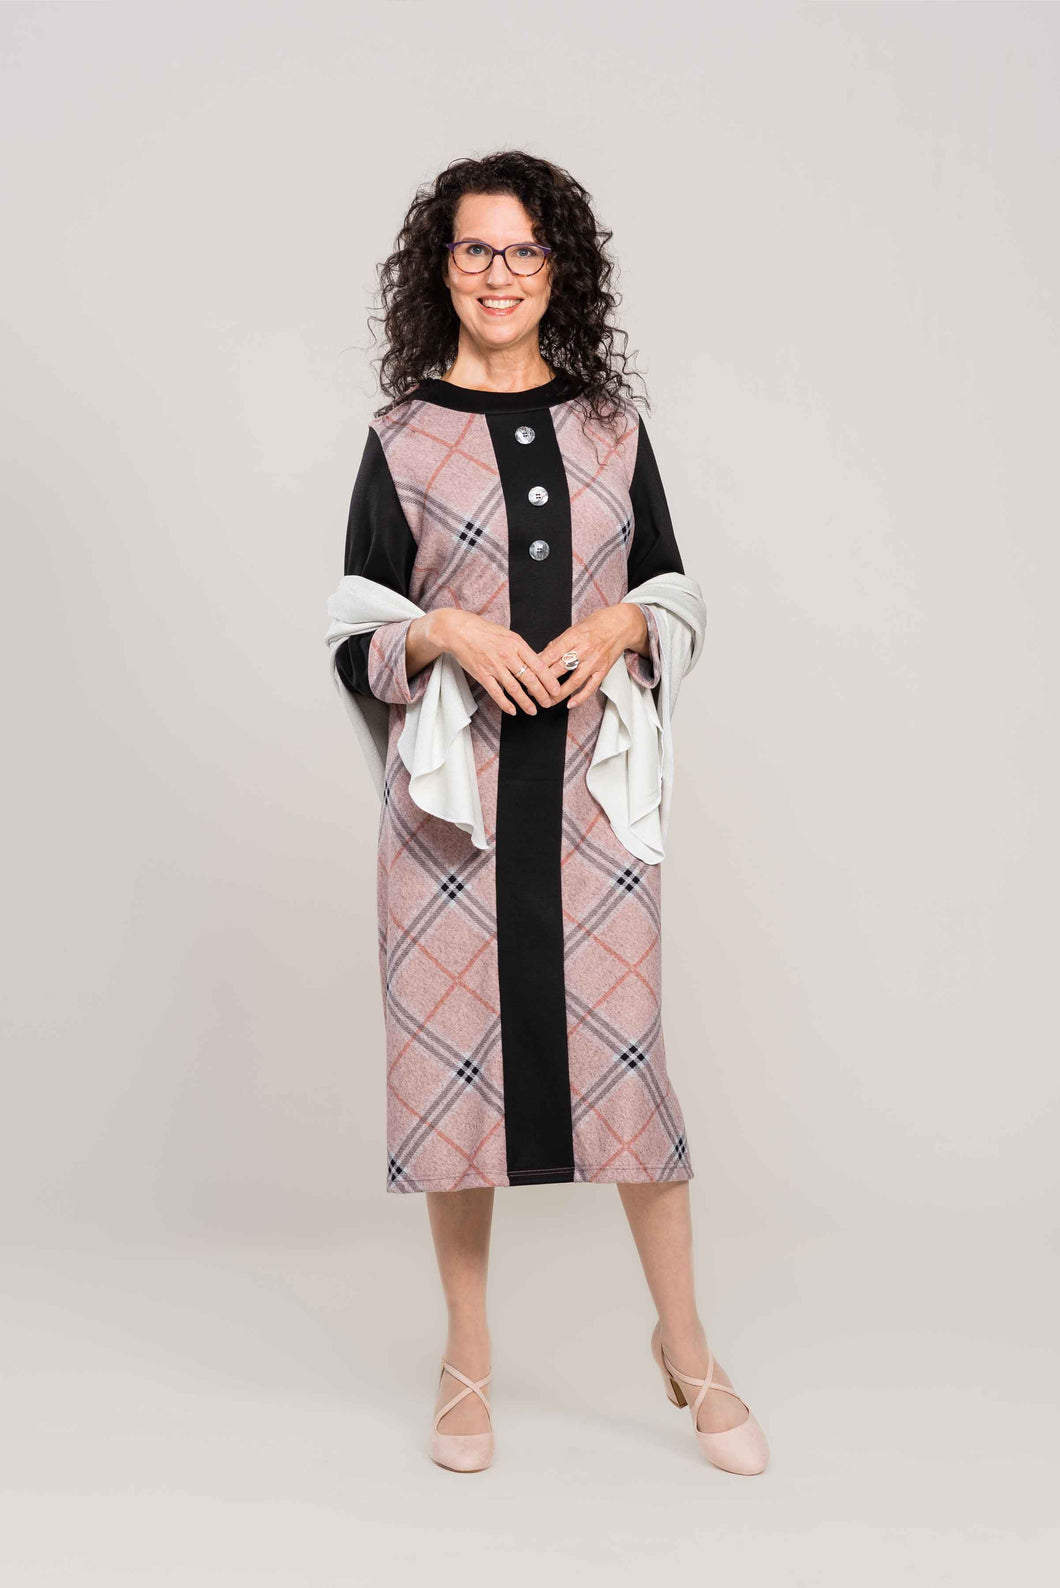 Adaptive Dress Coat Style Dress